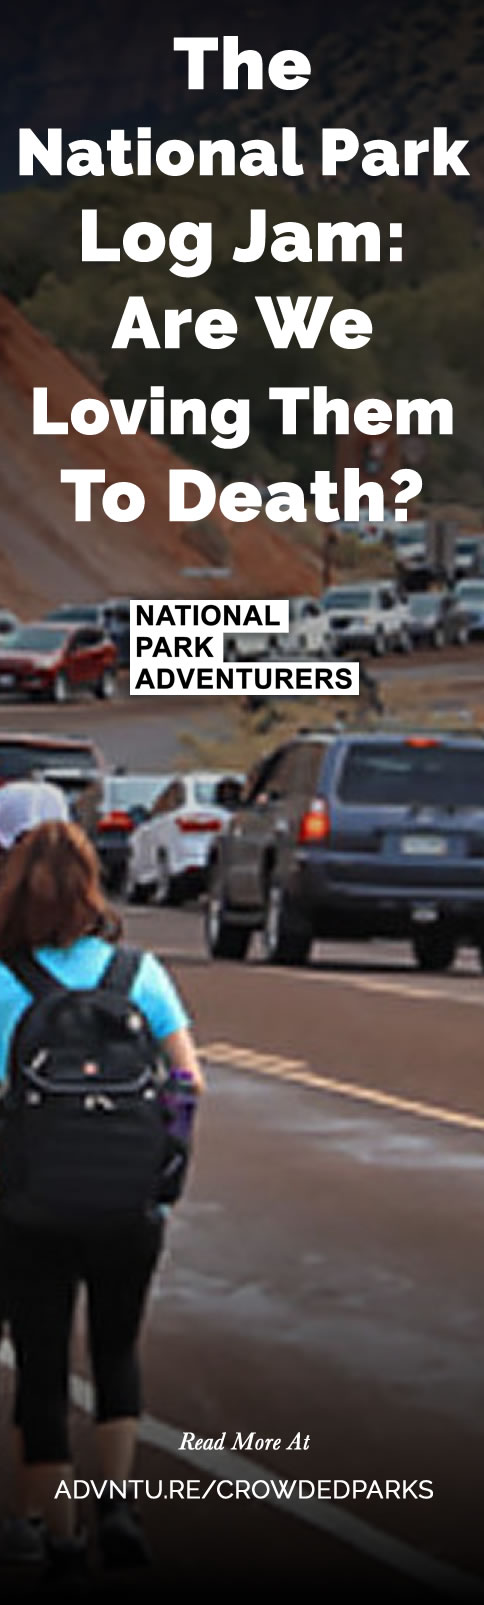 The National Park Log Jam: Are We Loving Them To Death?  - http://advntu.re/crowdedparks